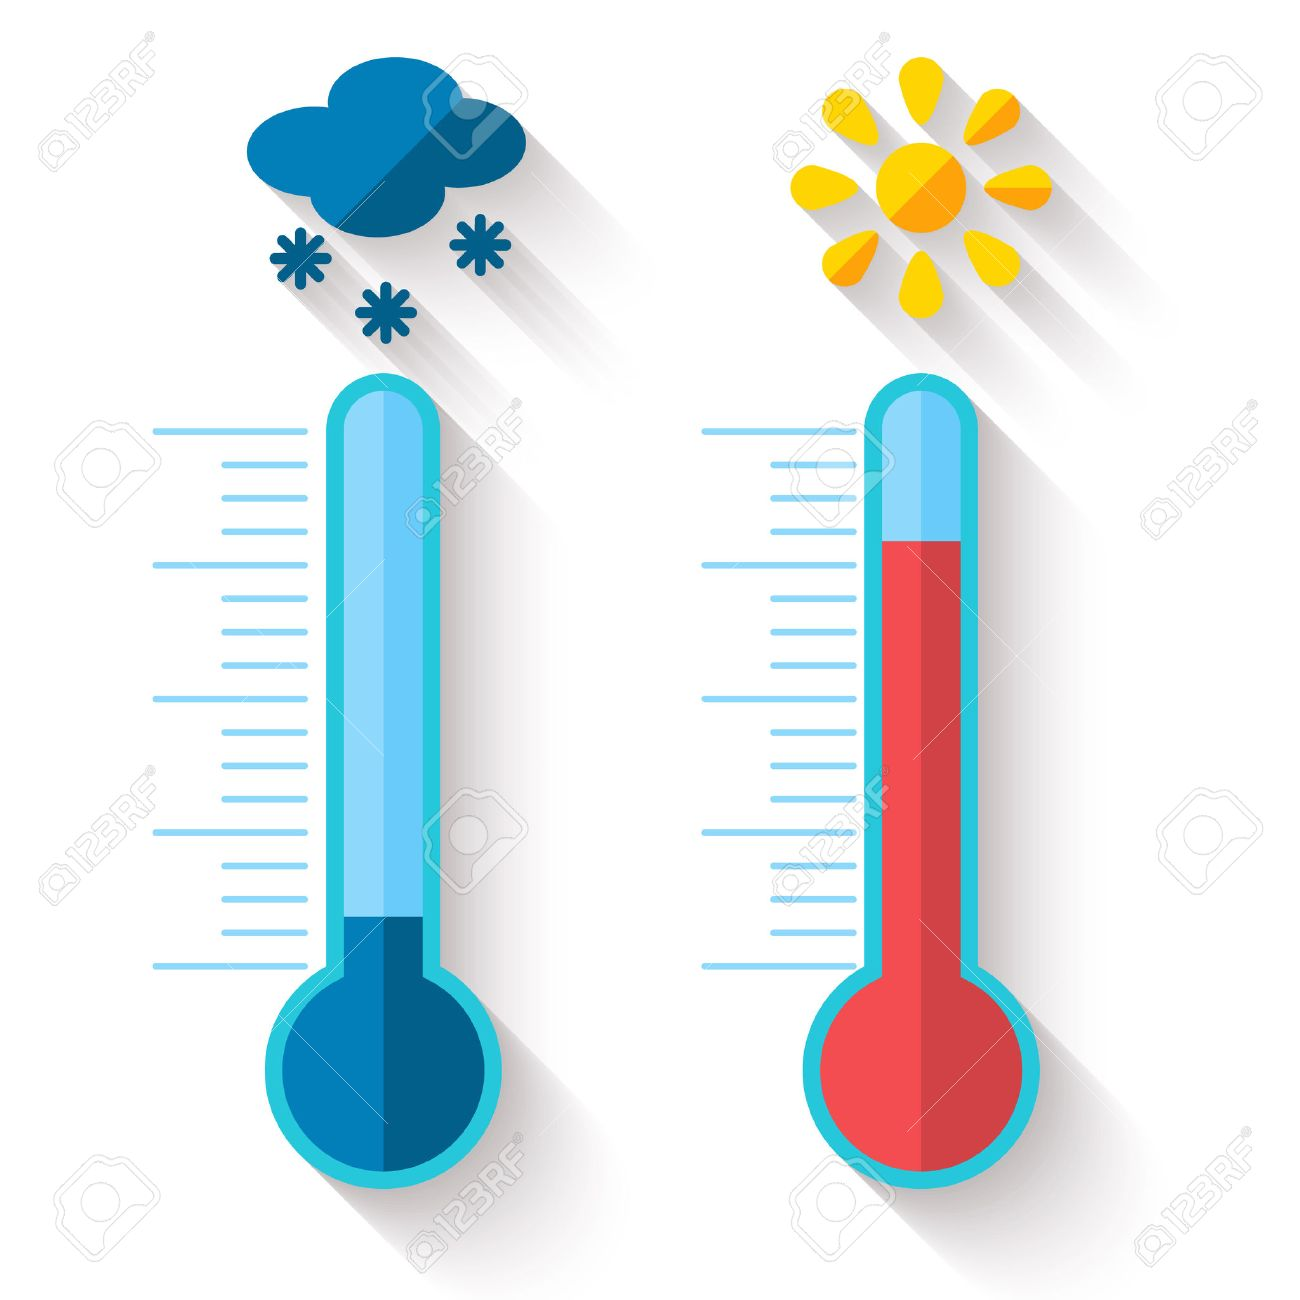 Flat design of Thermometer measuring heat and cold, with sun and snowflake icons, vector illustration - 37885386